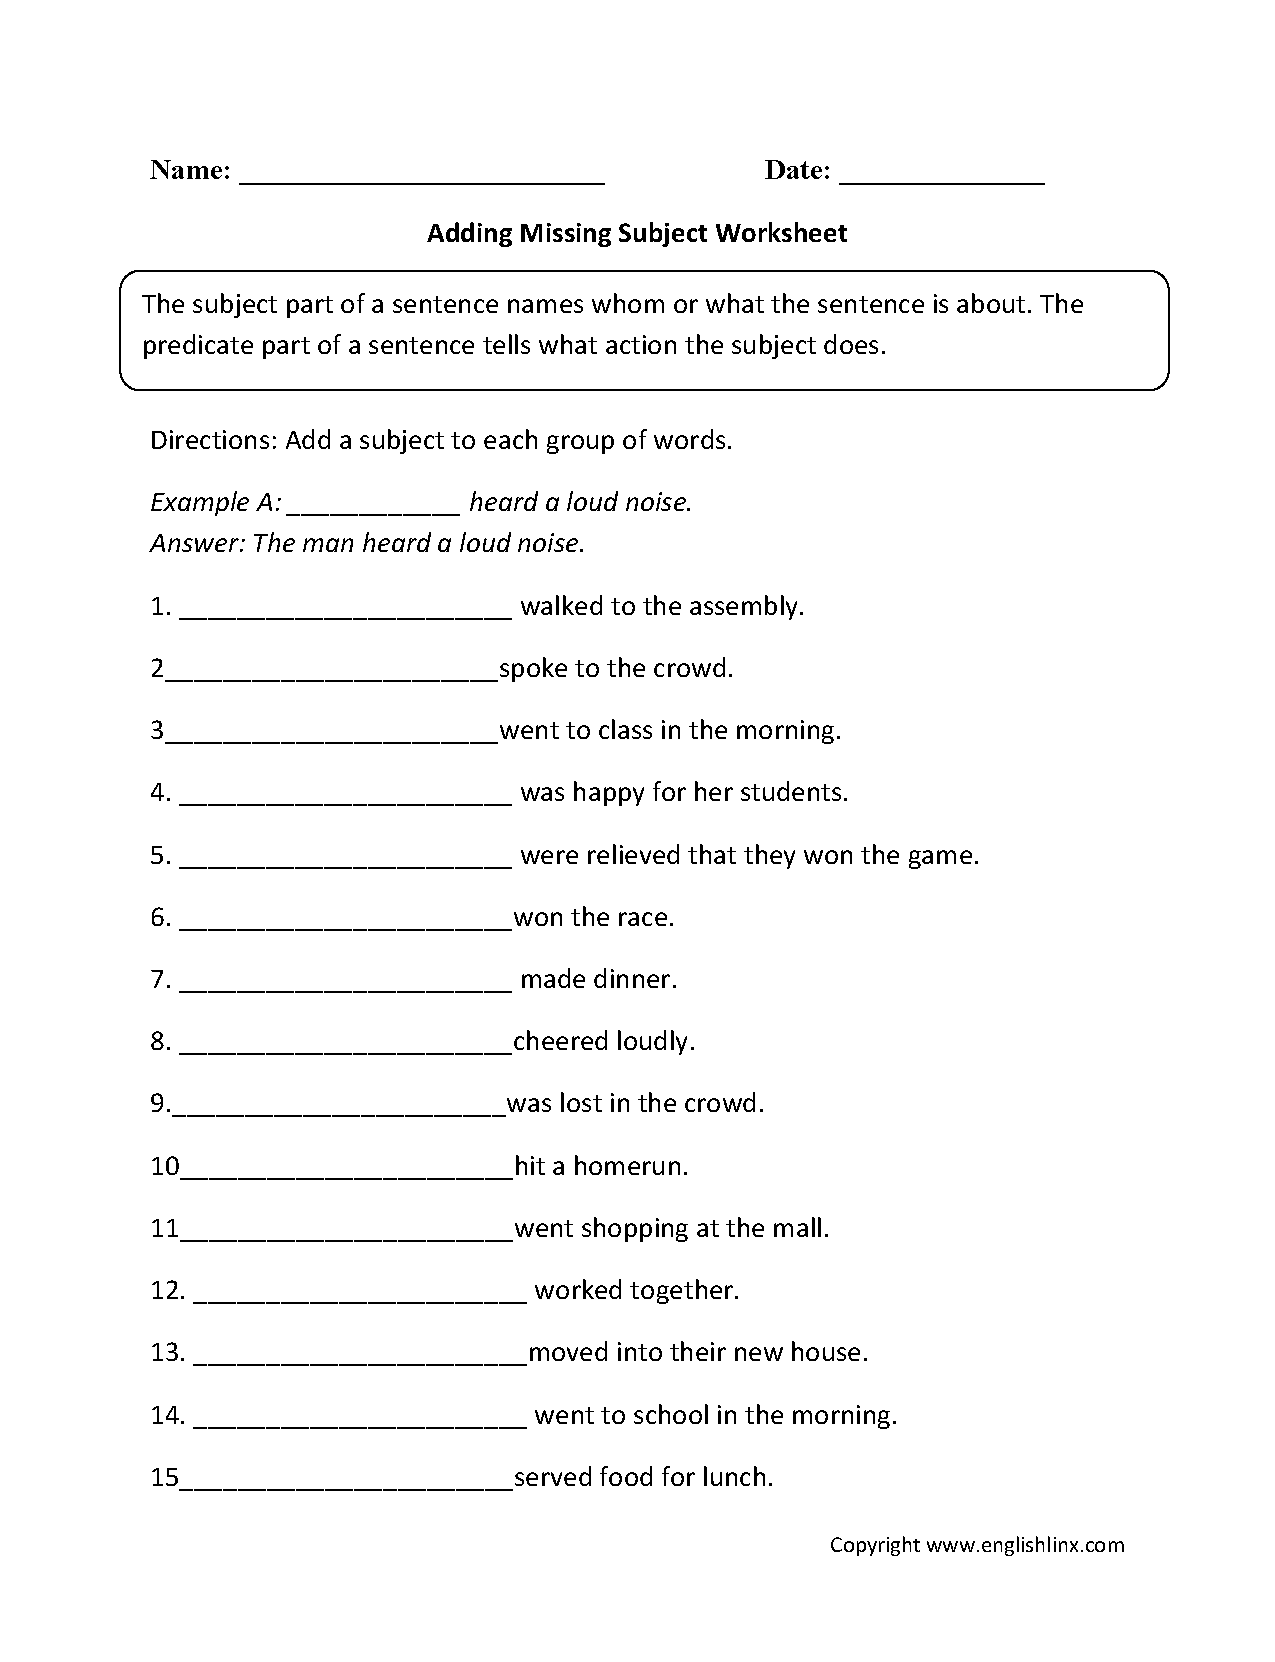 Adding Missing Subjects Worksheet